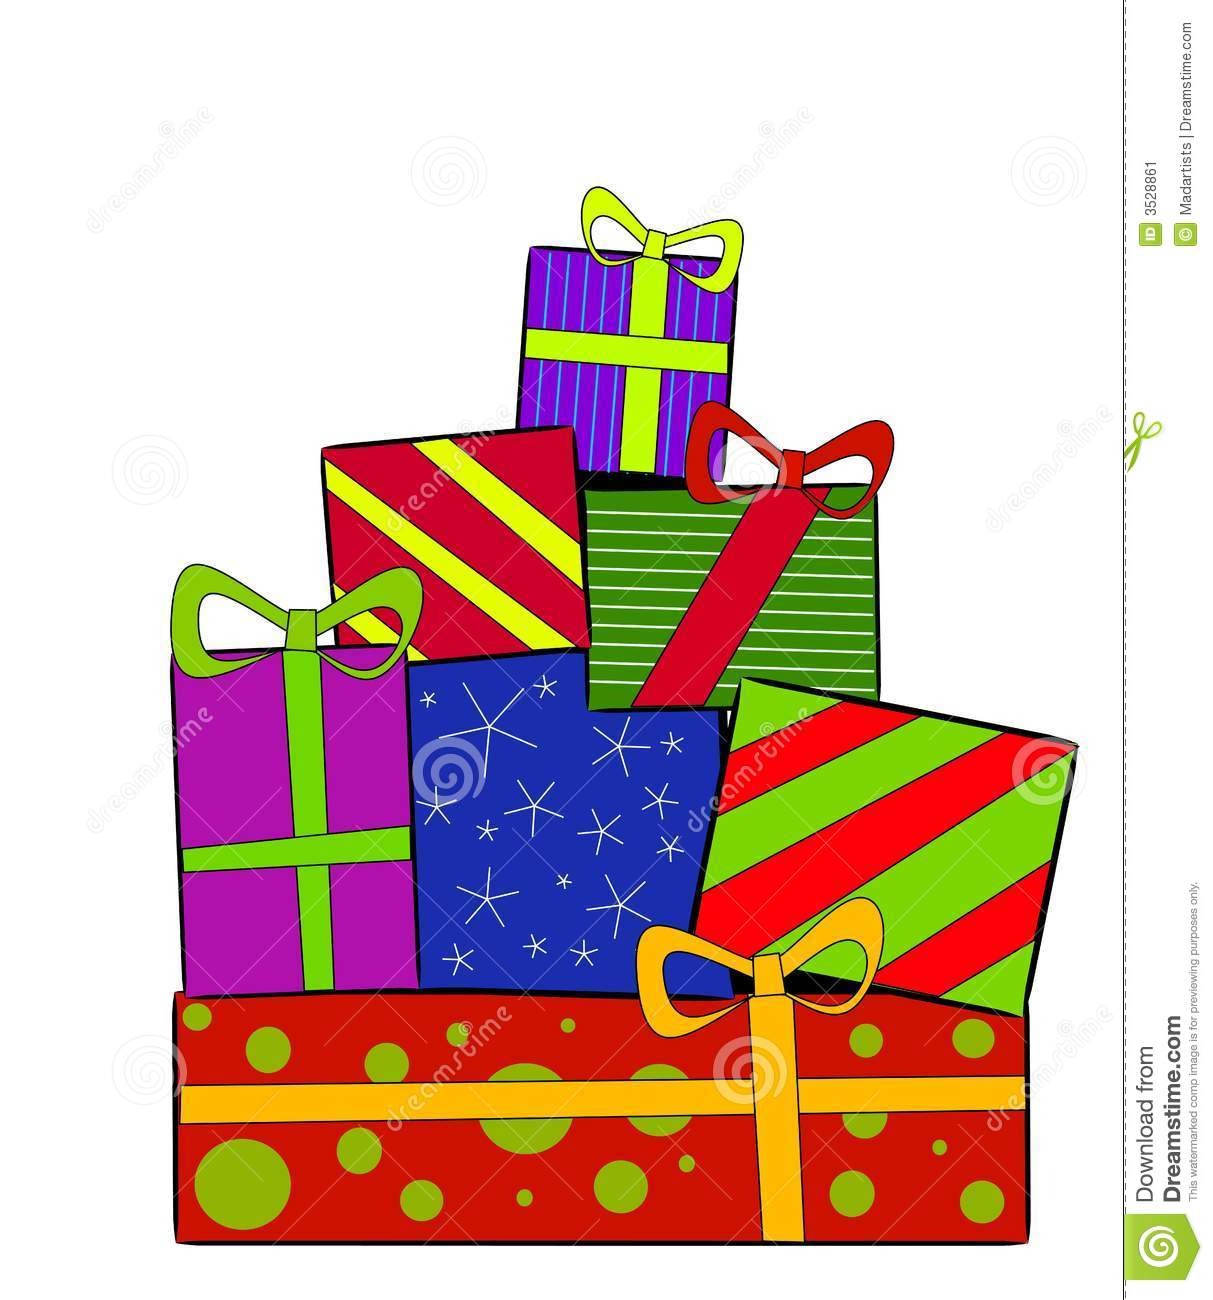 Pile of christmas presents clipart.